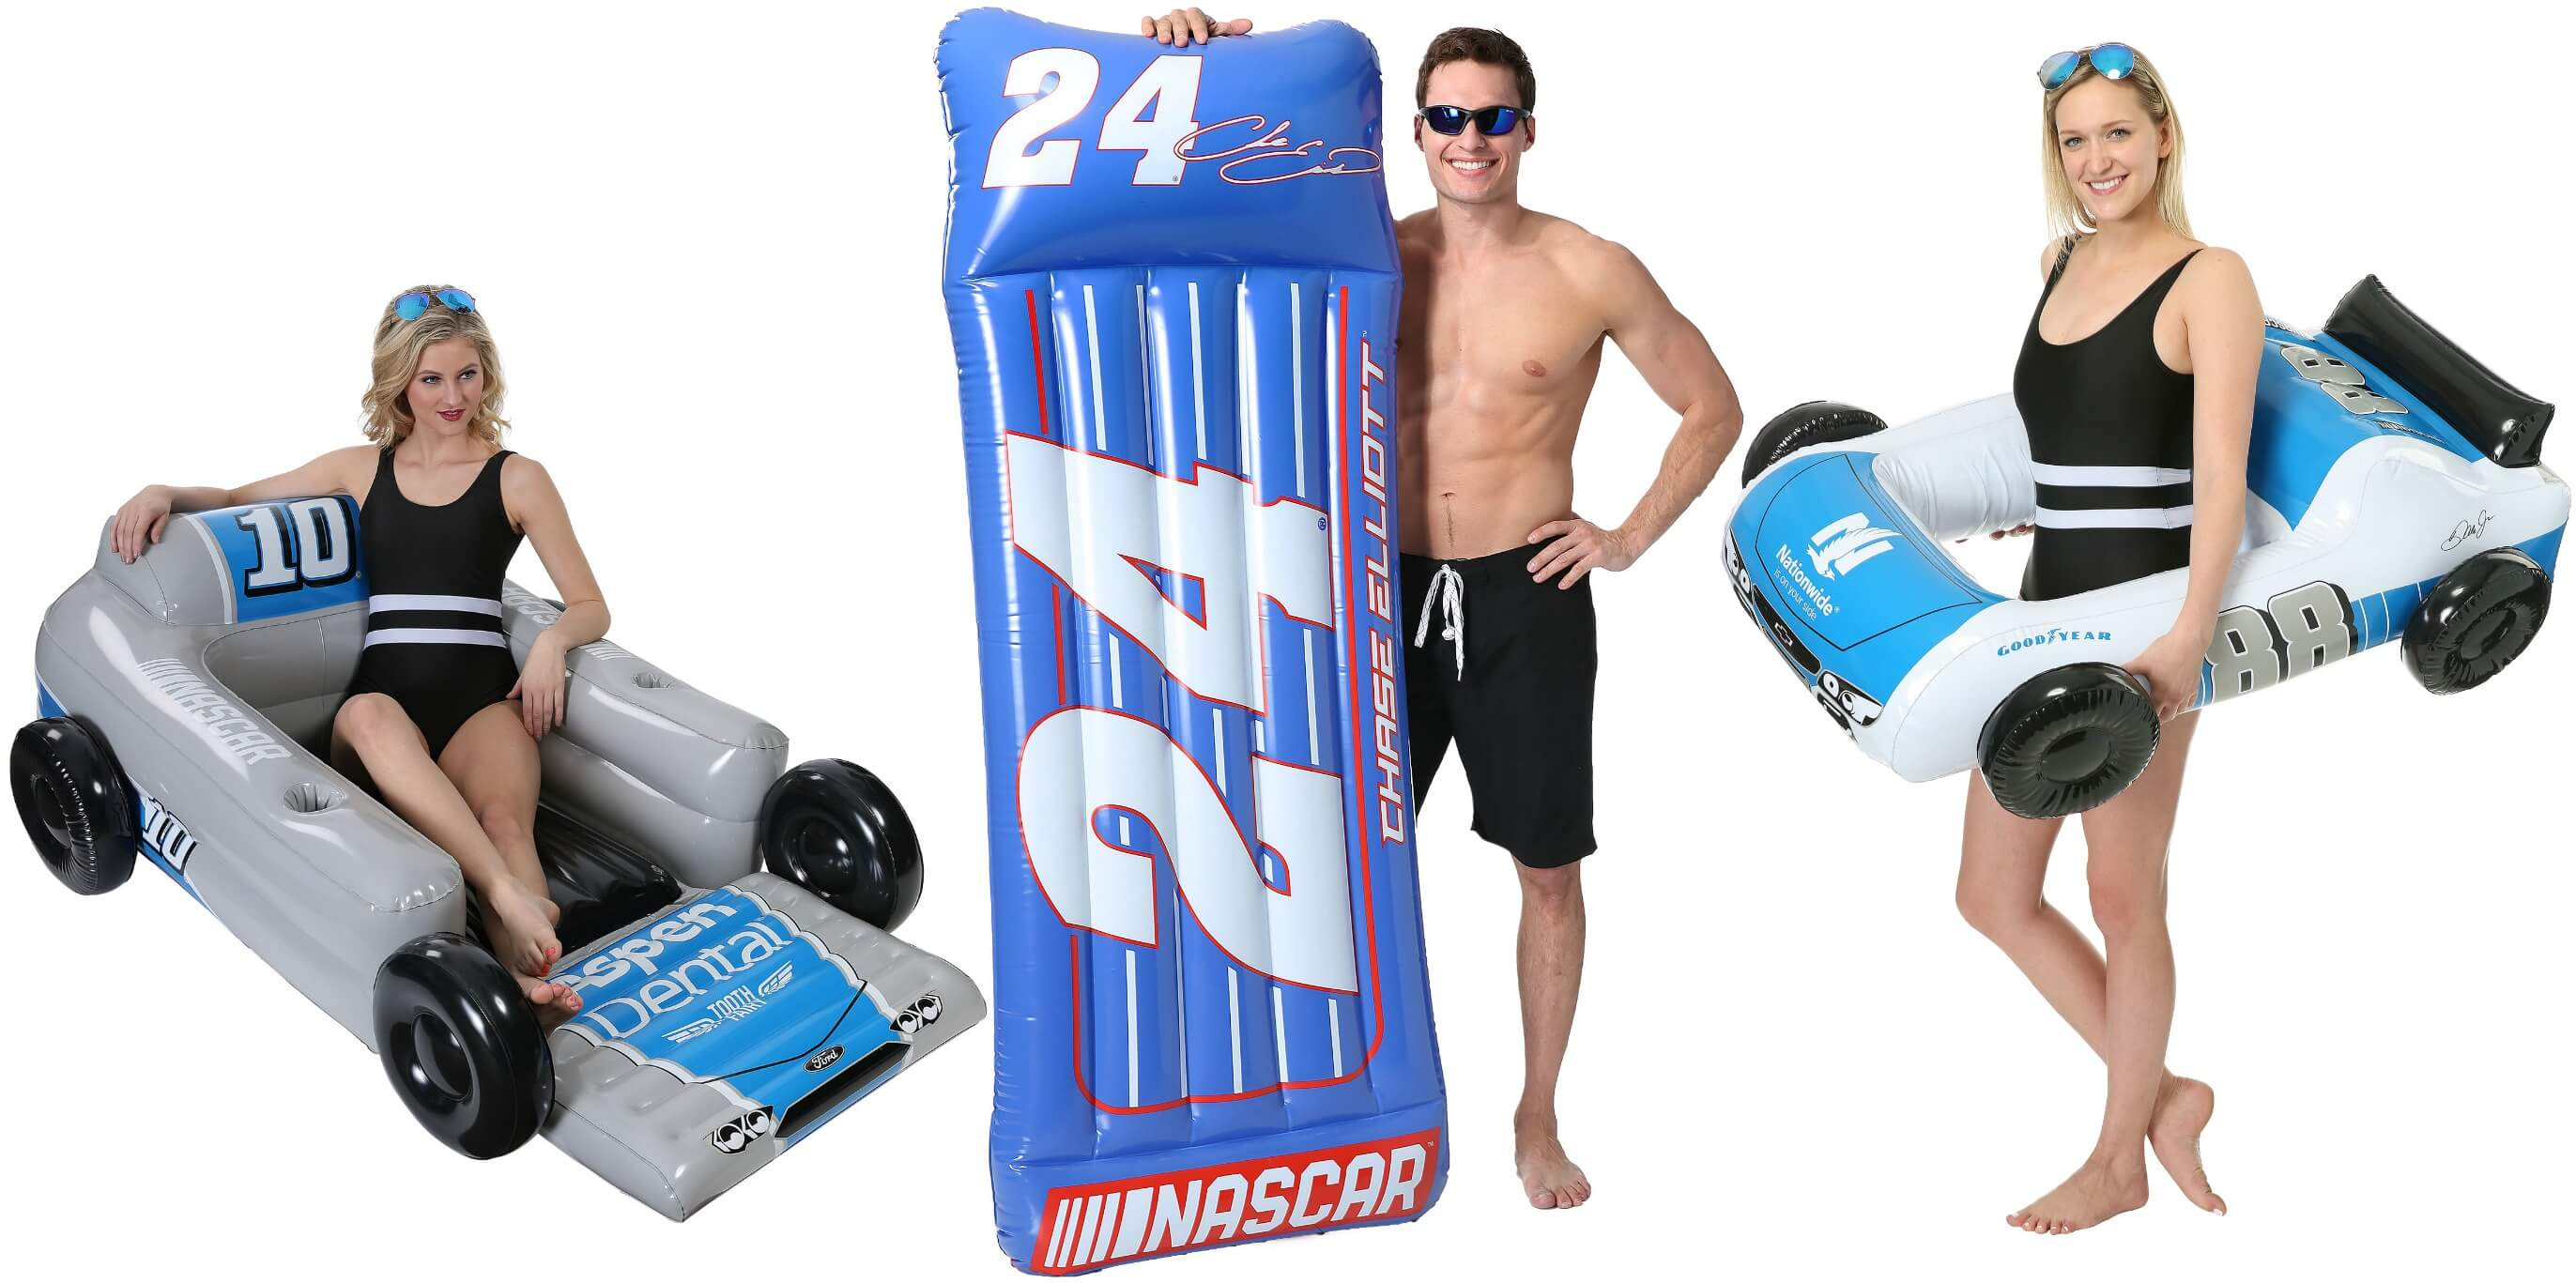 pool party theme for NASCAR fans